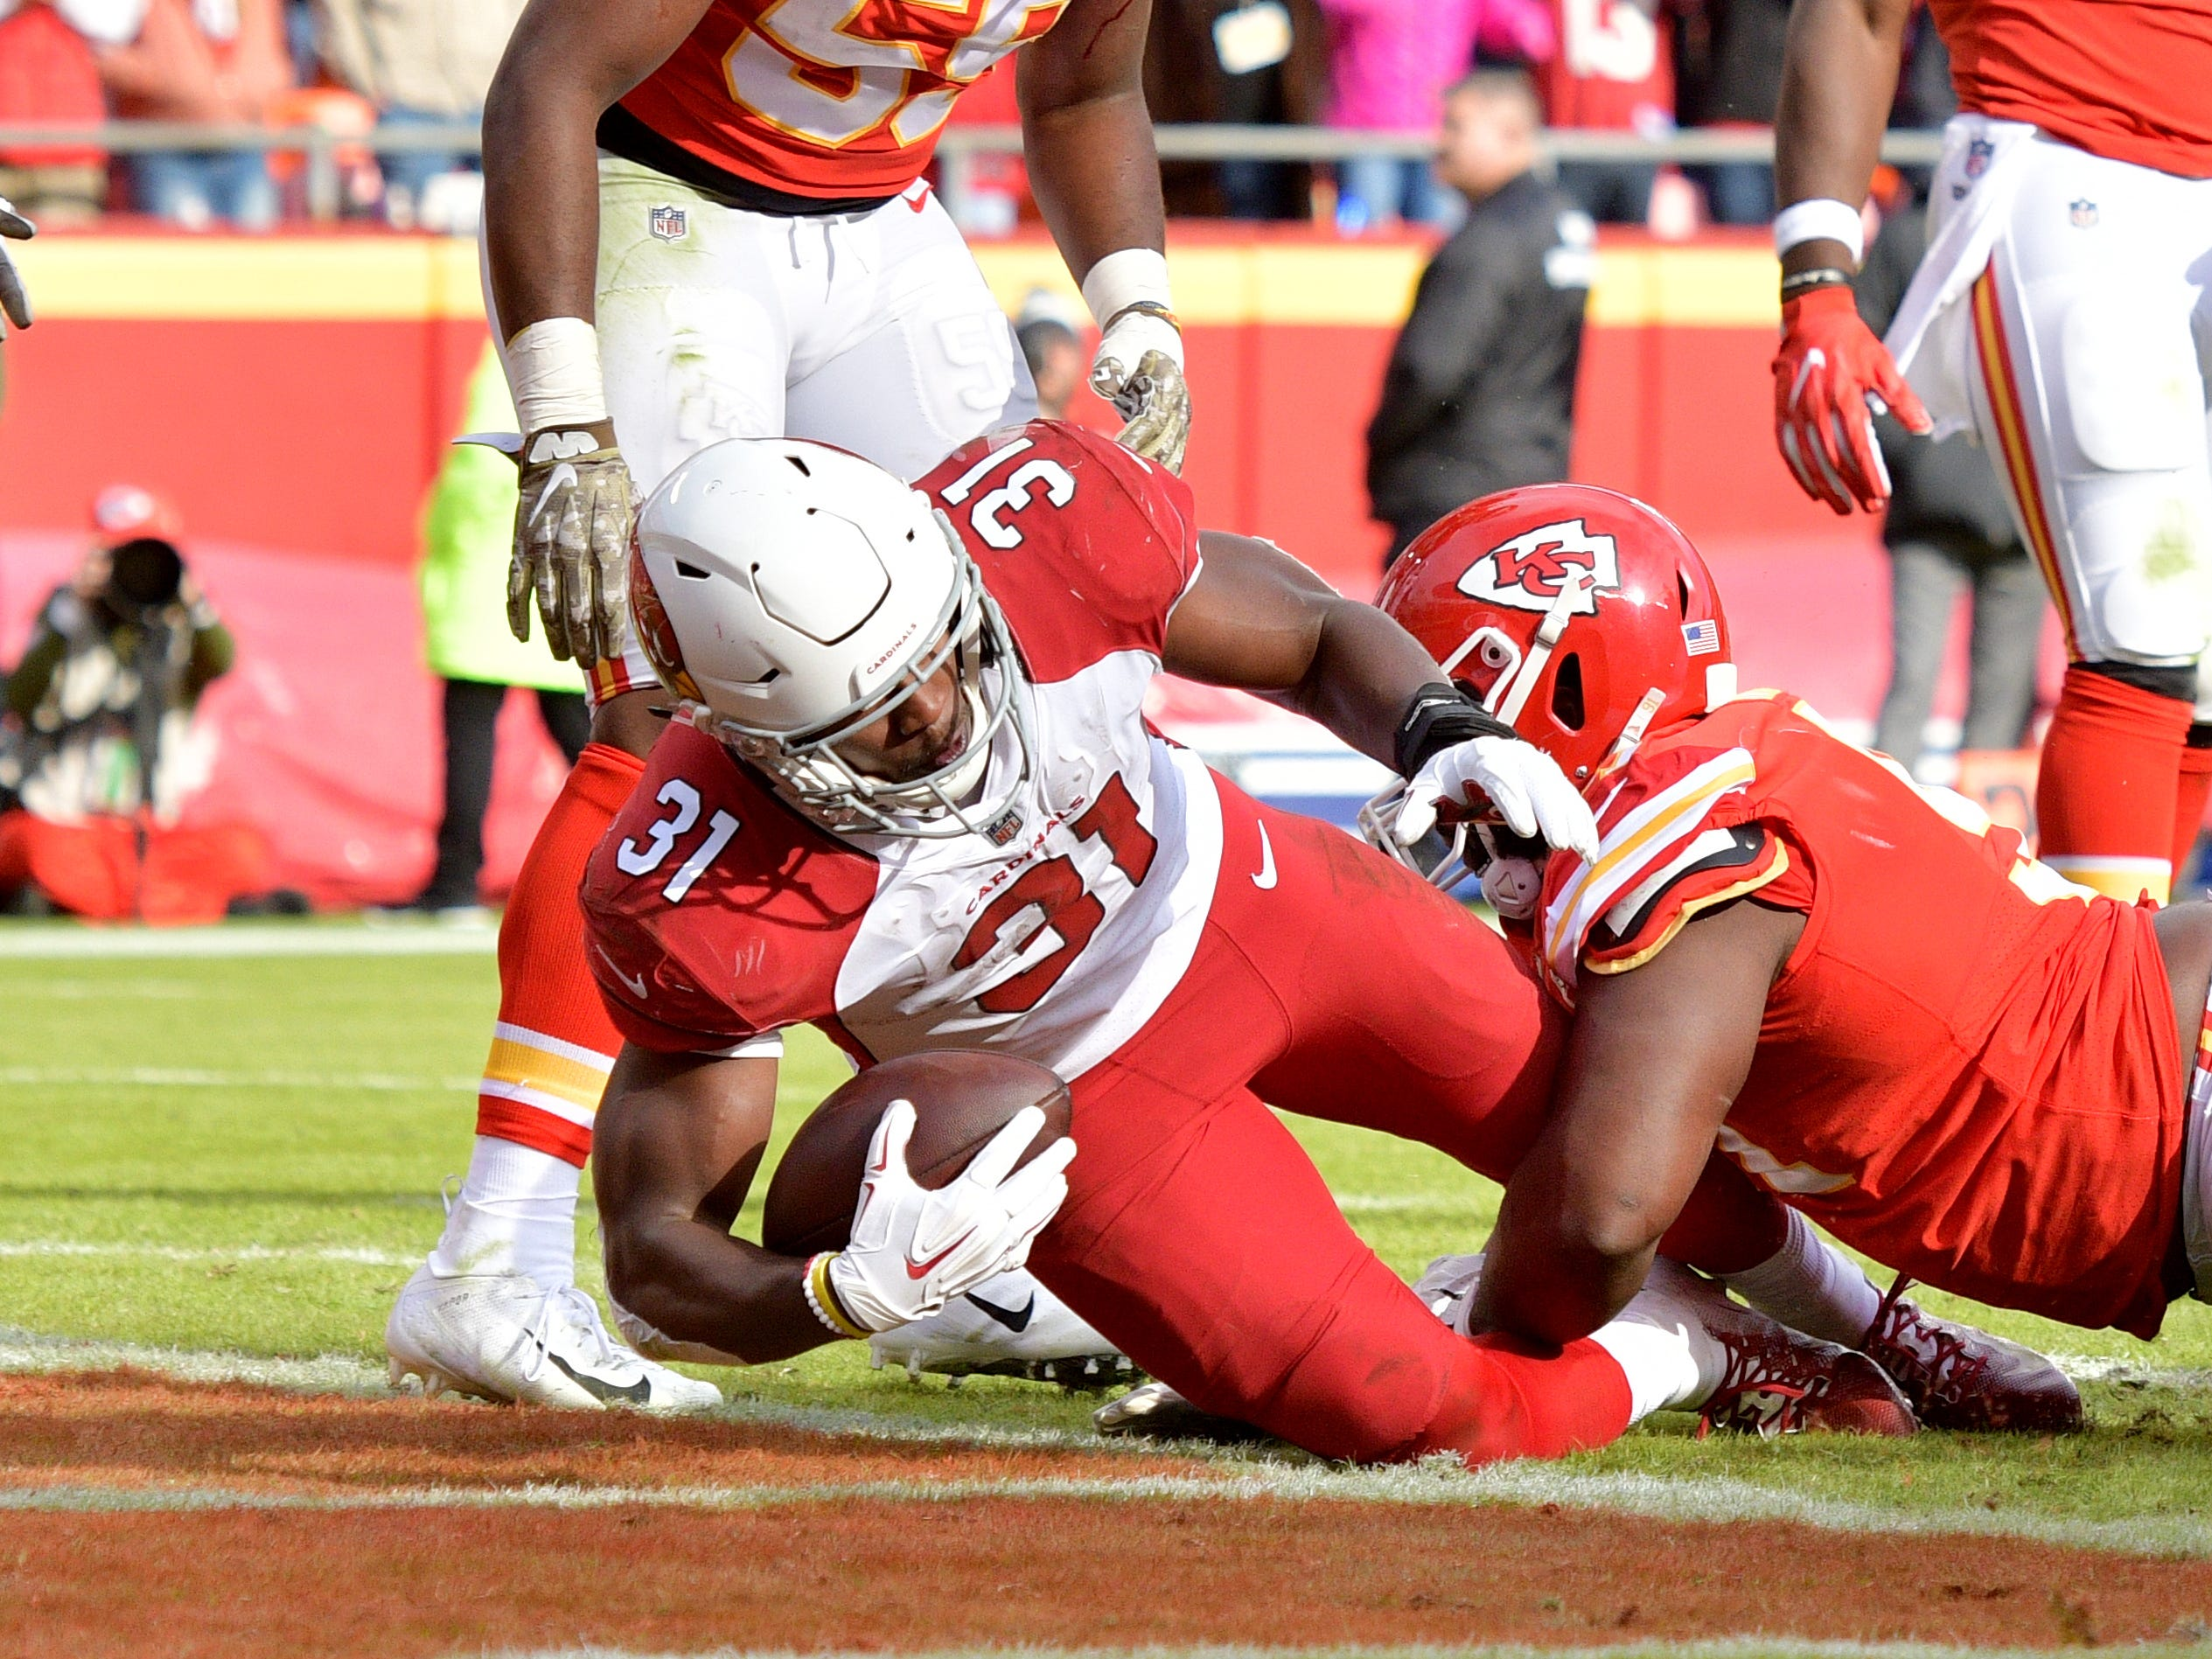 Nov 11, 2018; Kansas City, MO, USA; Arizona Cardinals running back David Johnson (31) scores a touchdown as Kansas City Chiefs nose tackle Derrick Nnadi (91) makes the tackle during the second half at Arrowhead Stadium. The Chiefs won 26-14. Mandatory Credit: Denny Medley-USA TODAY Sports